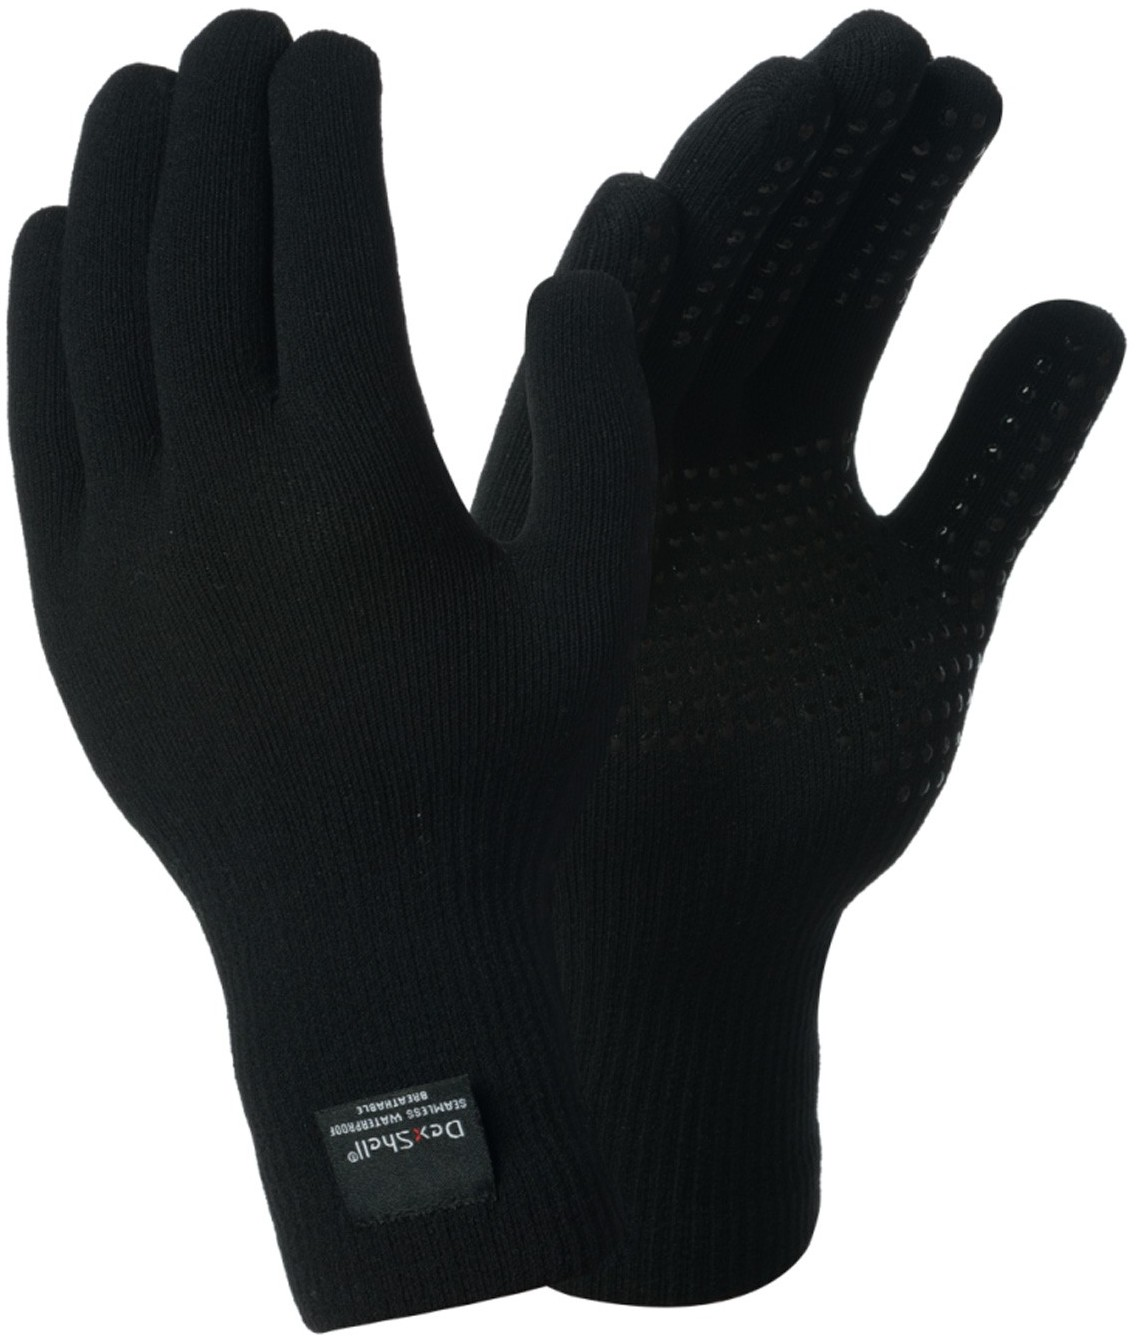 Dexshell ThermFit Merino Wool Gloves DG326M